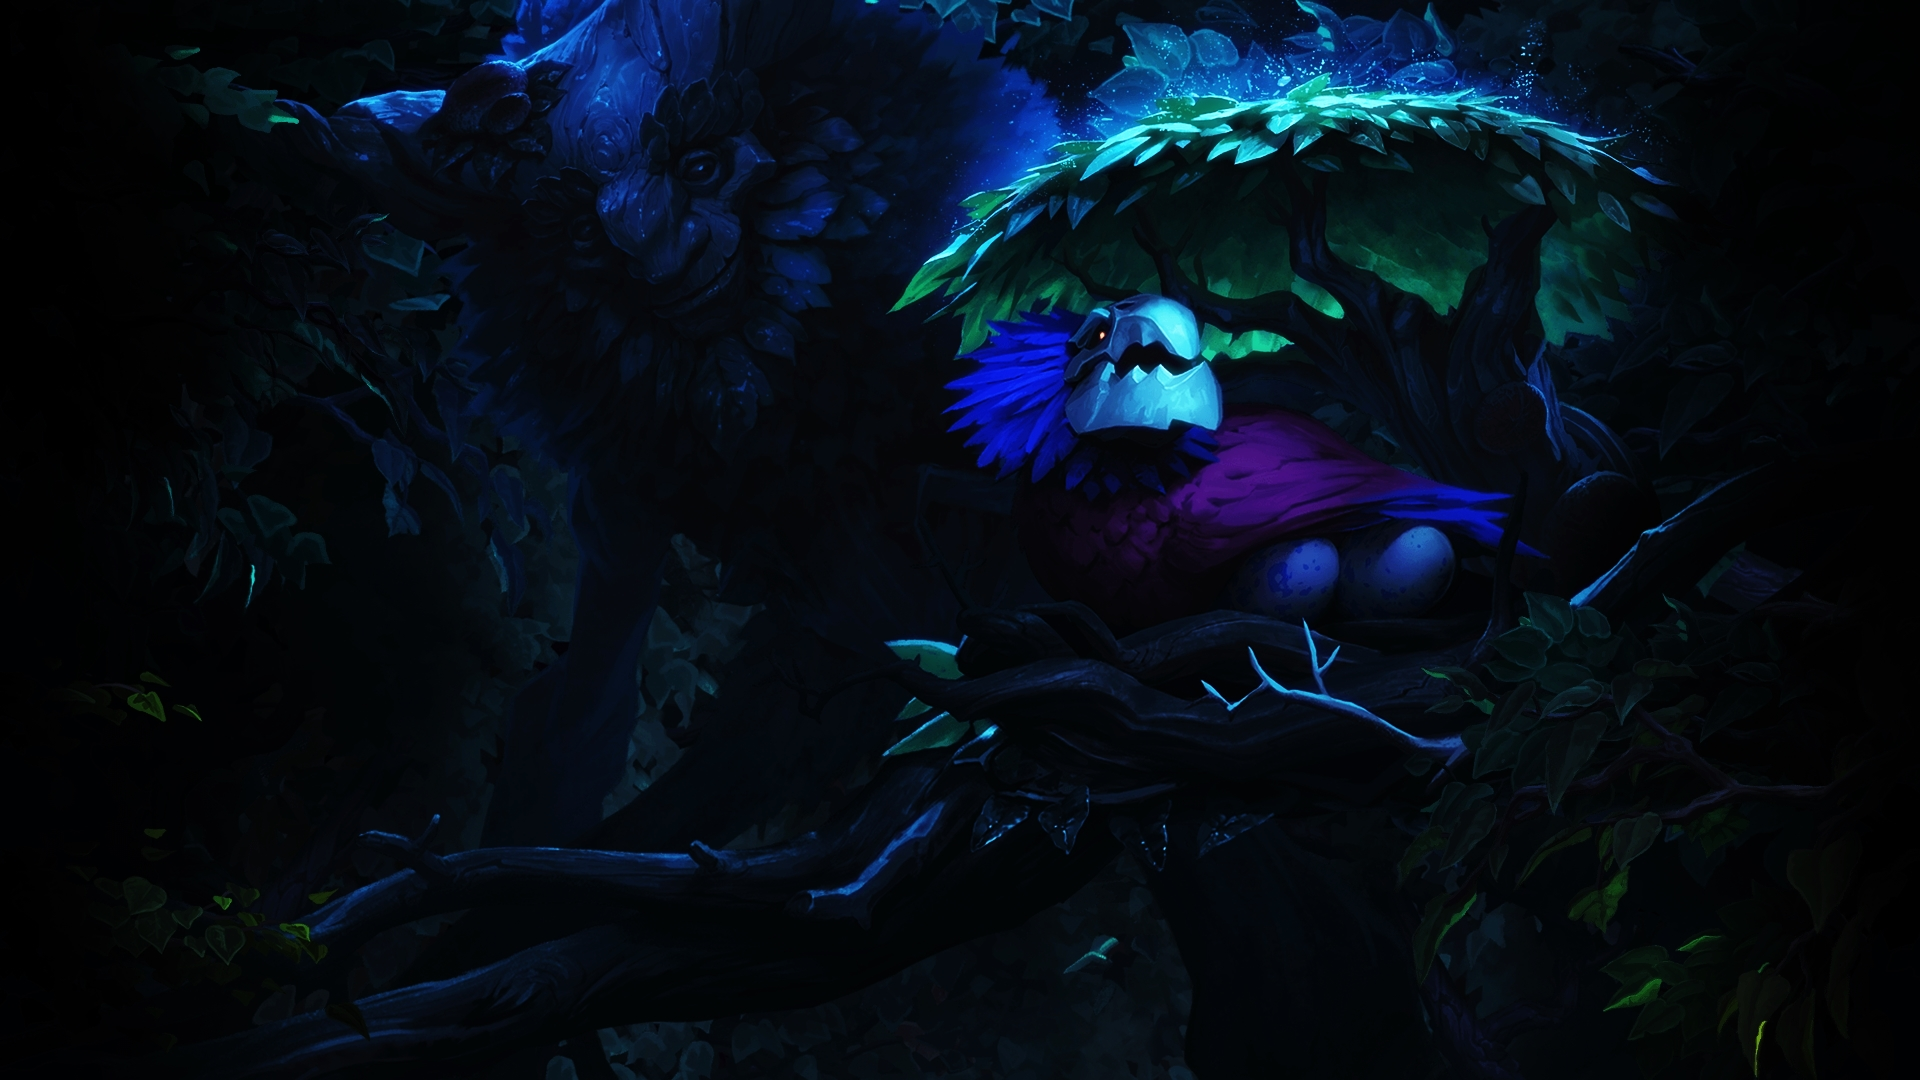 Lol Champions Wallpaper Hd Ivern Lolwallpapers